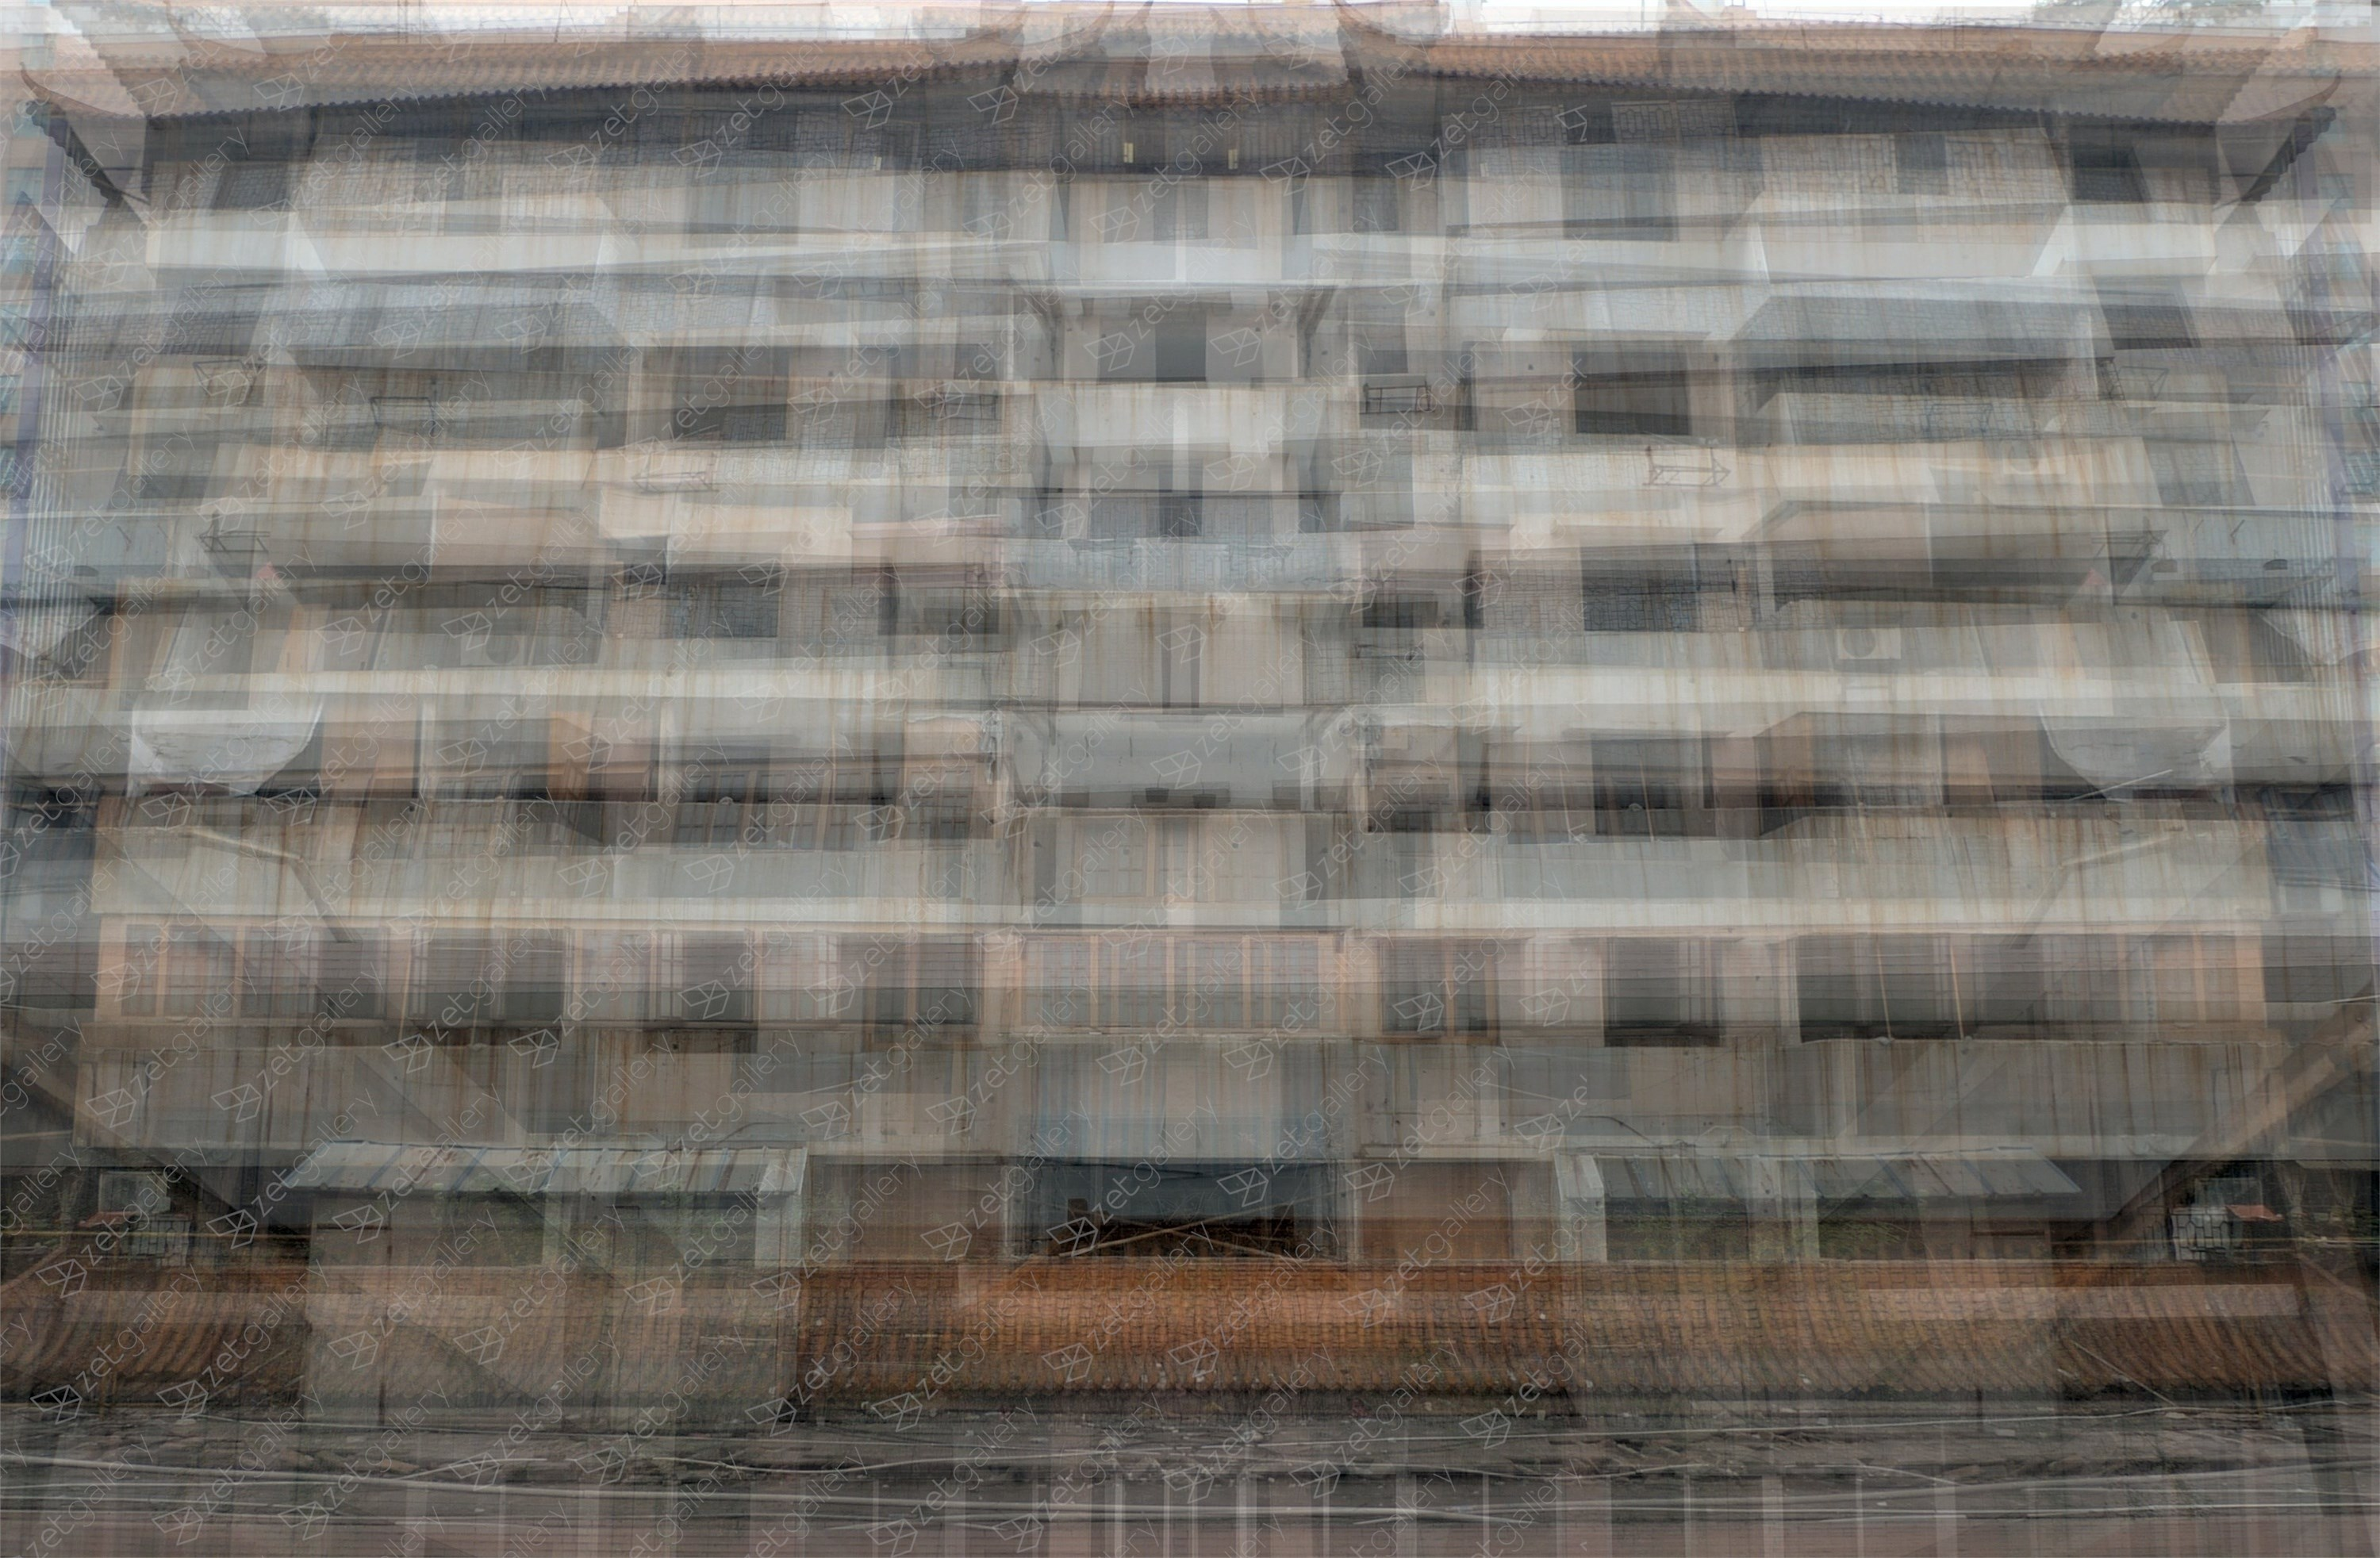 Foshan flats 6, original Architecture Digital Photography by John Brooks